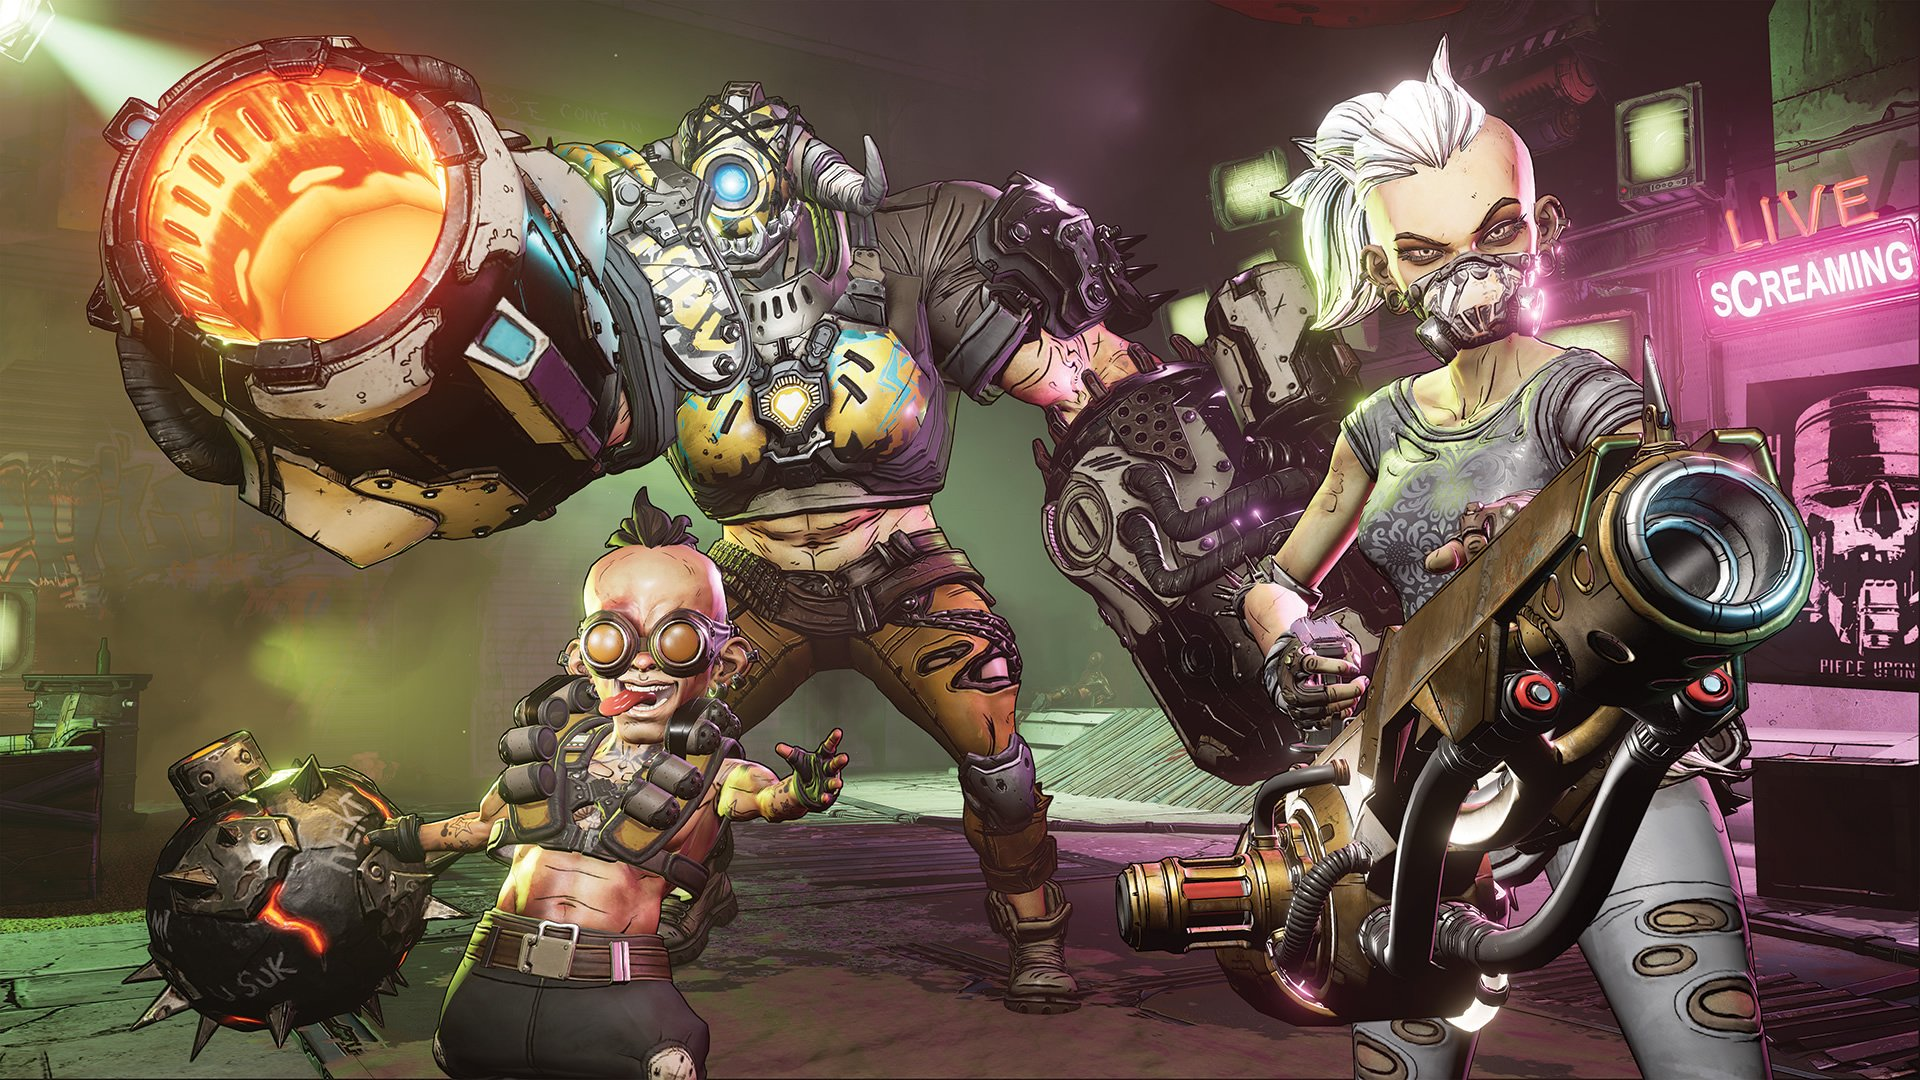 You'll need a billion guns to deal with all the baddies in Borderlands 3.